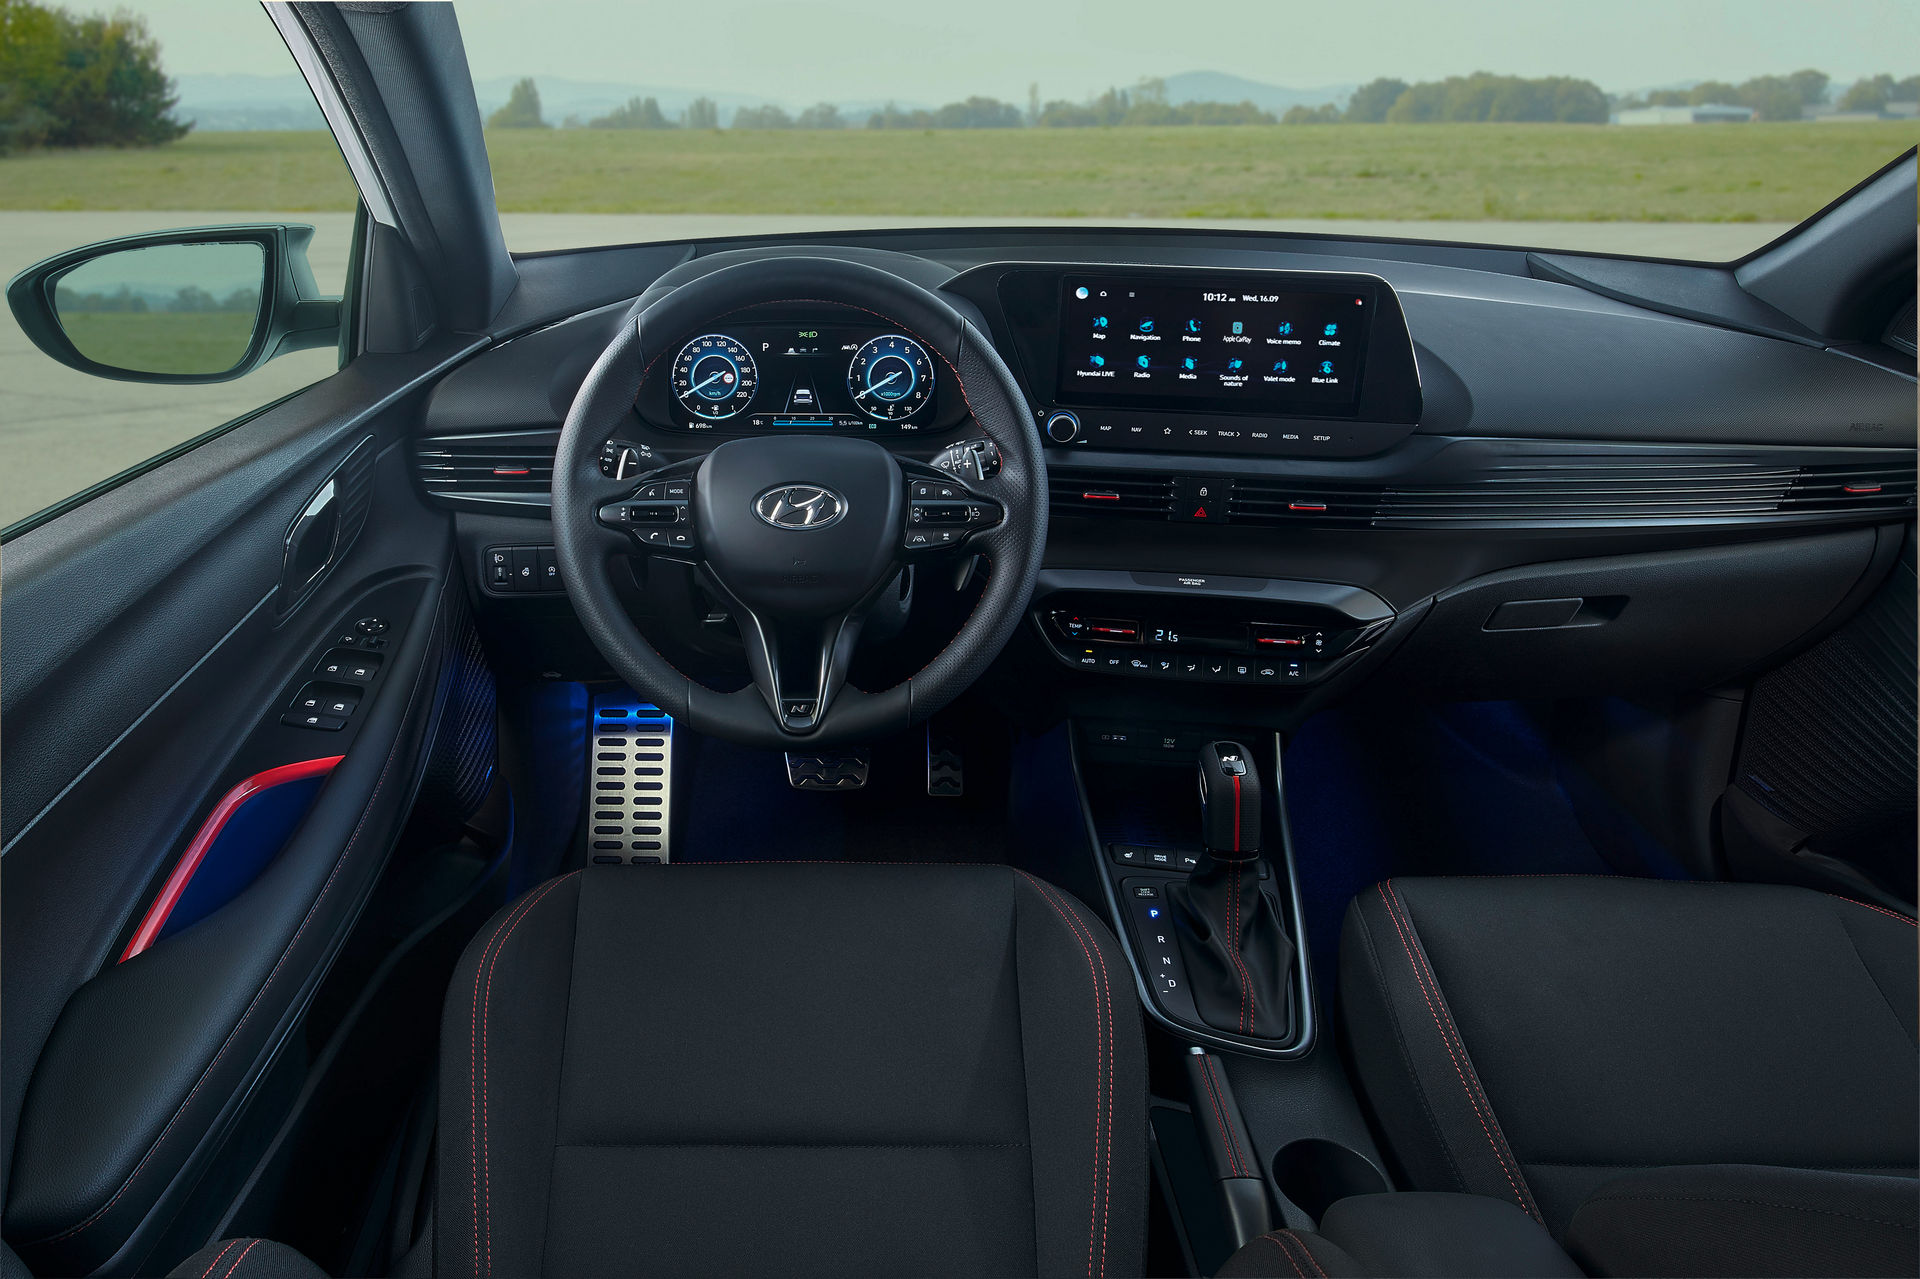 All-black interior with new 3-spoke steering wheel